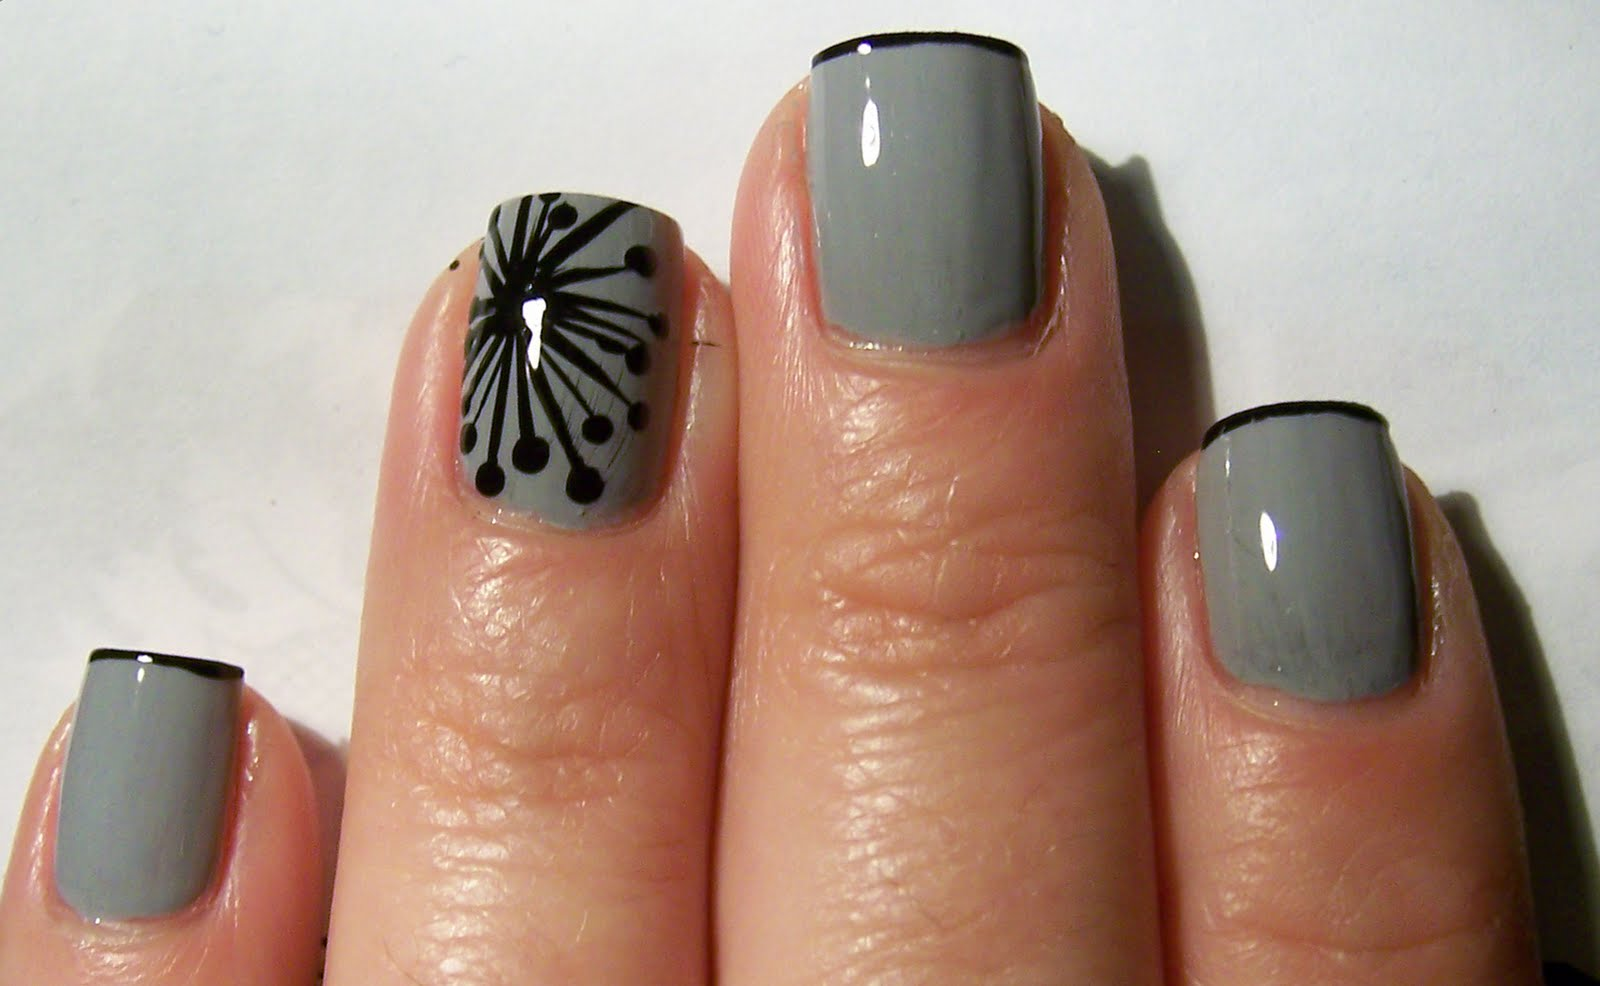 Iceomatic's Nails: Modern Dandelion Nail Art